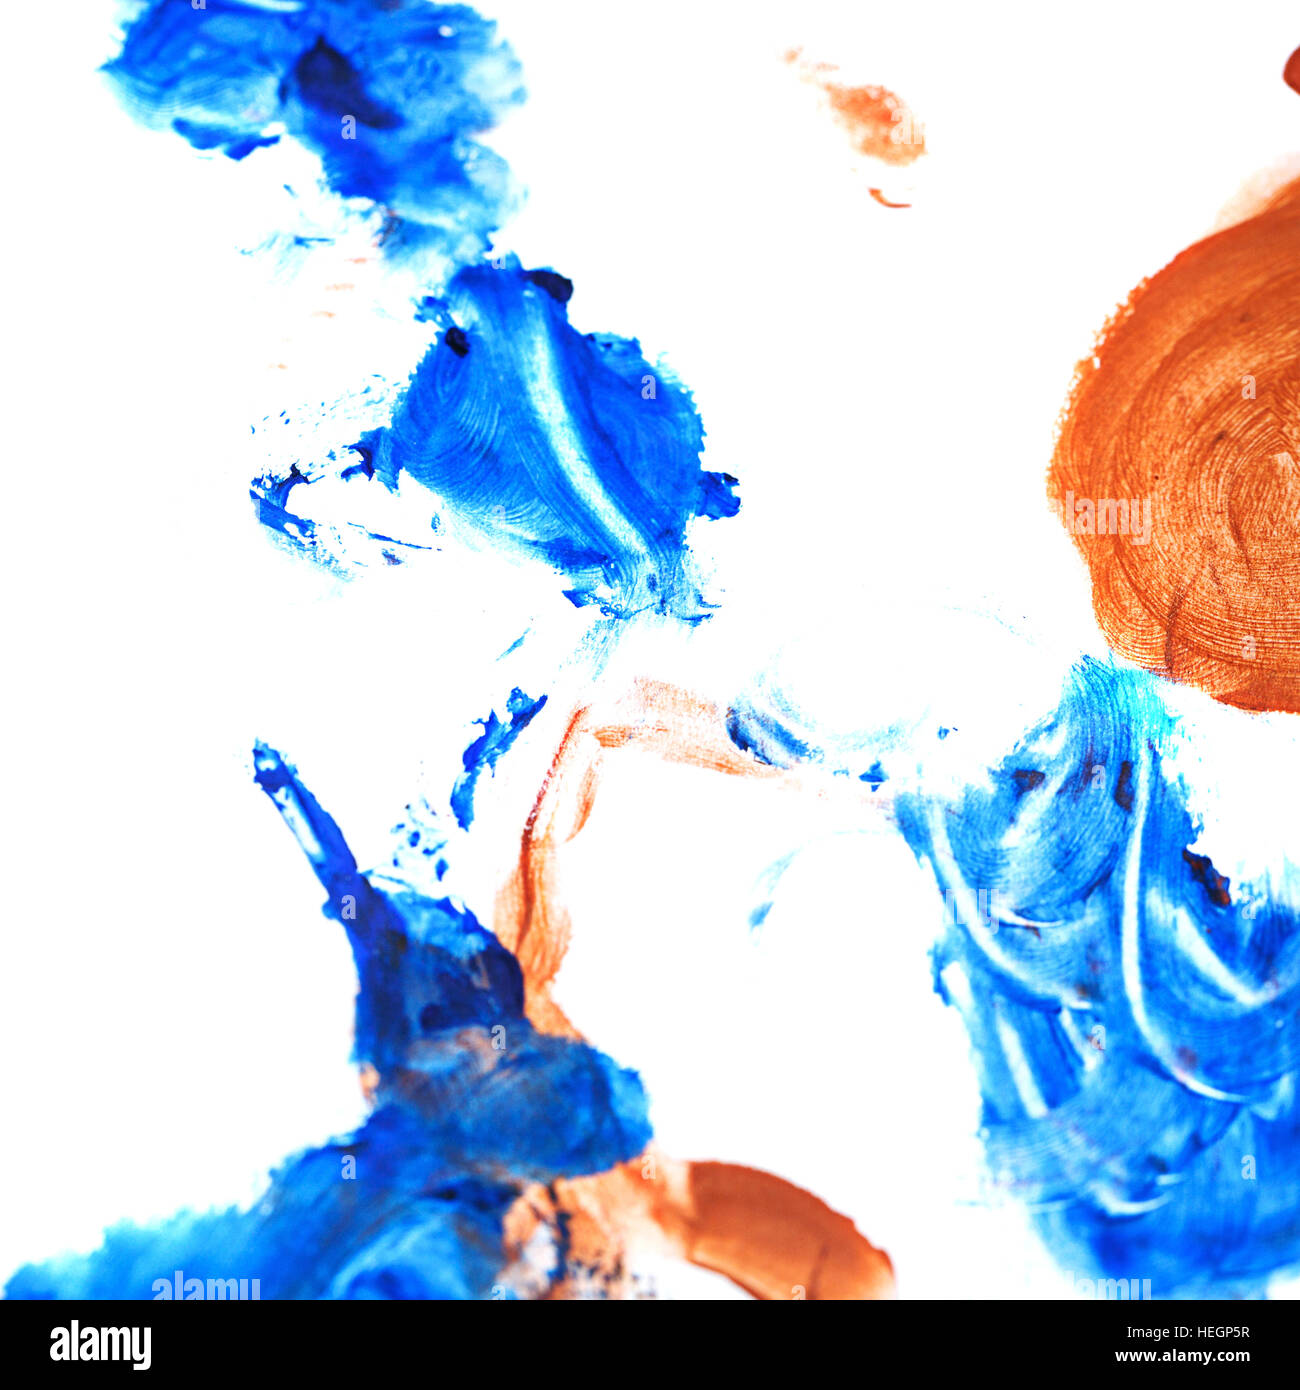 Blue brown gouache background. Design elements. Painting. Grunge blue brown abstract colorful background on watercolor Stock Photo